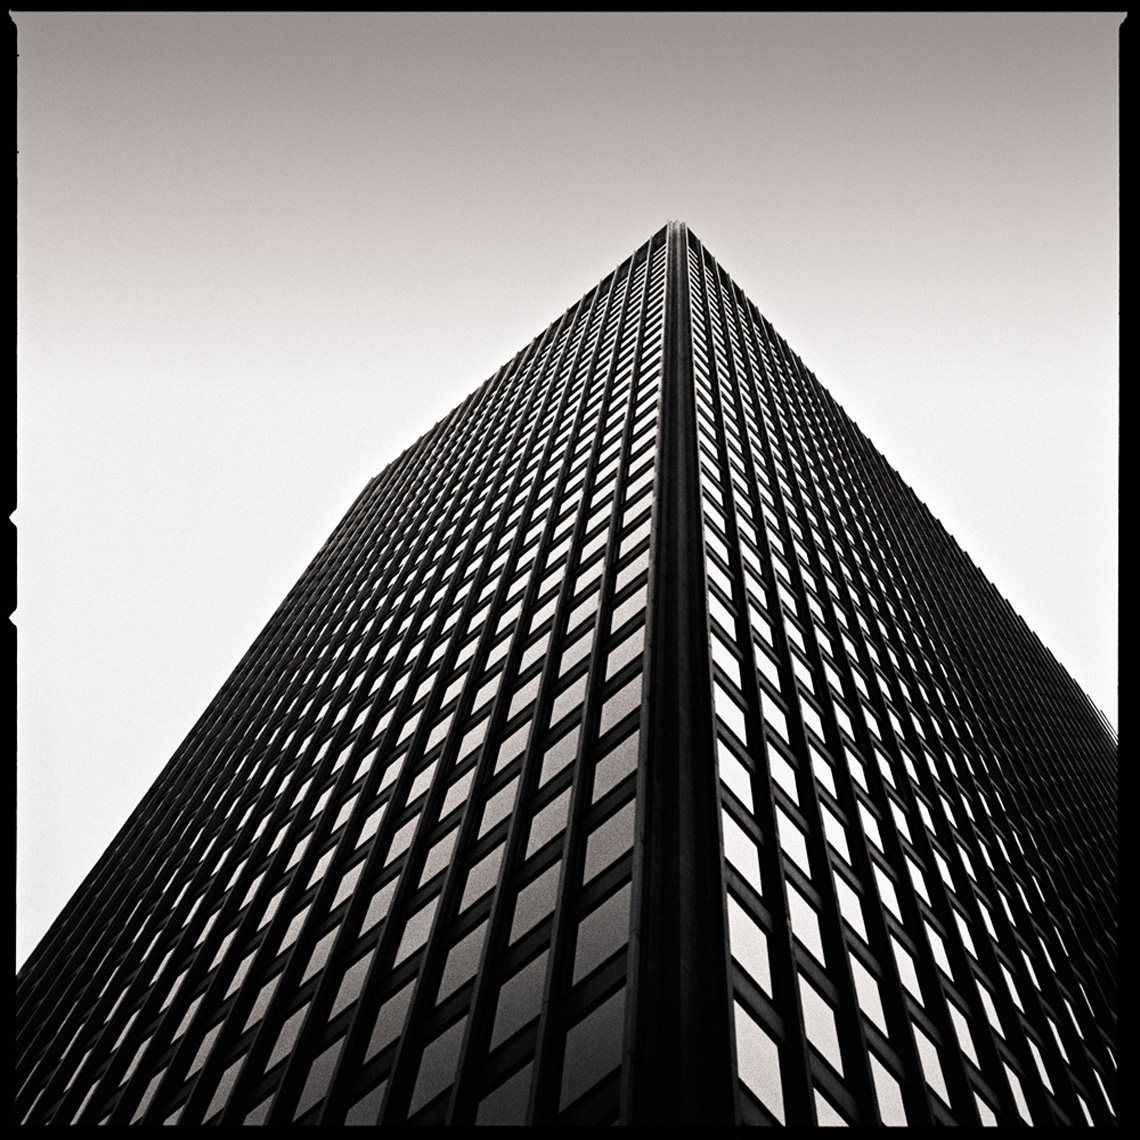 Sean Perry Photographs • The Seagram Building, from the series Monolith